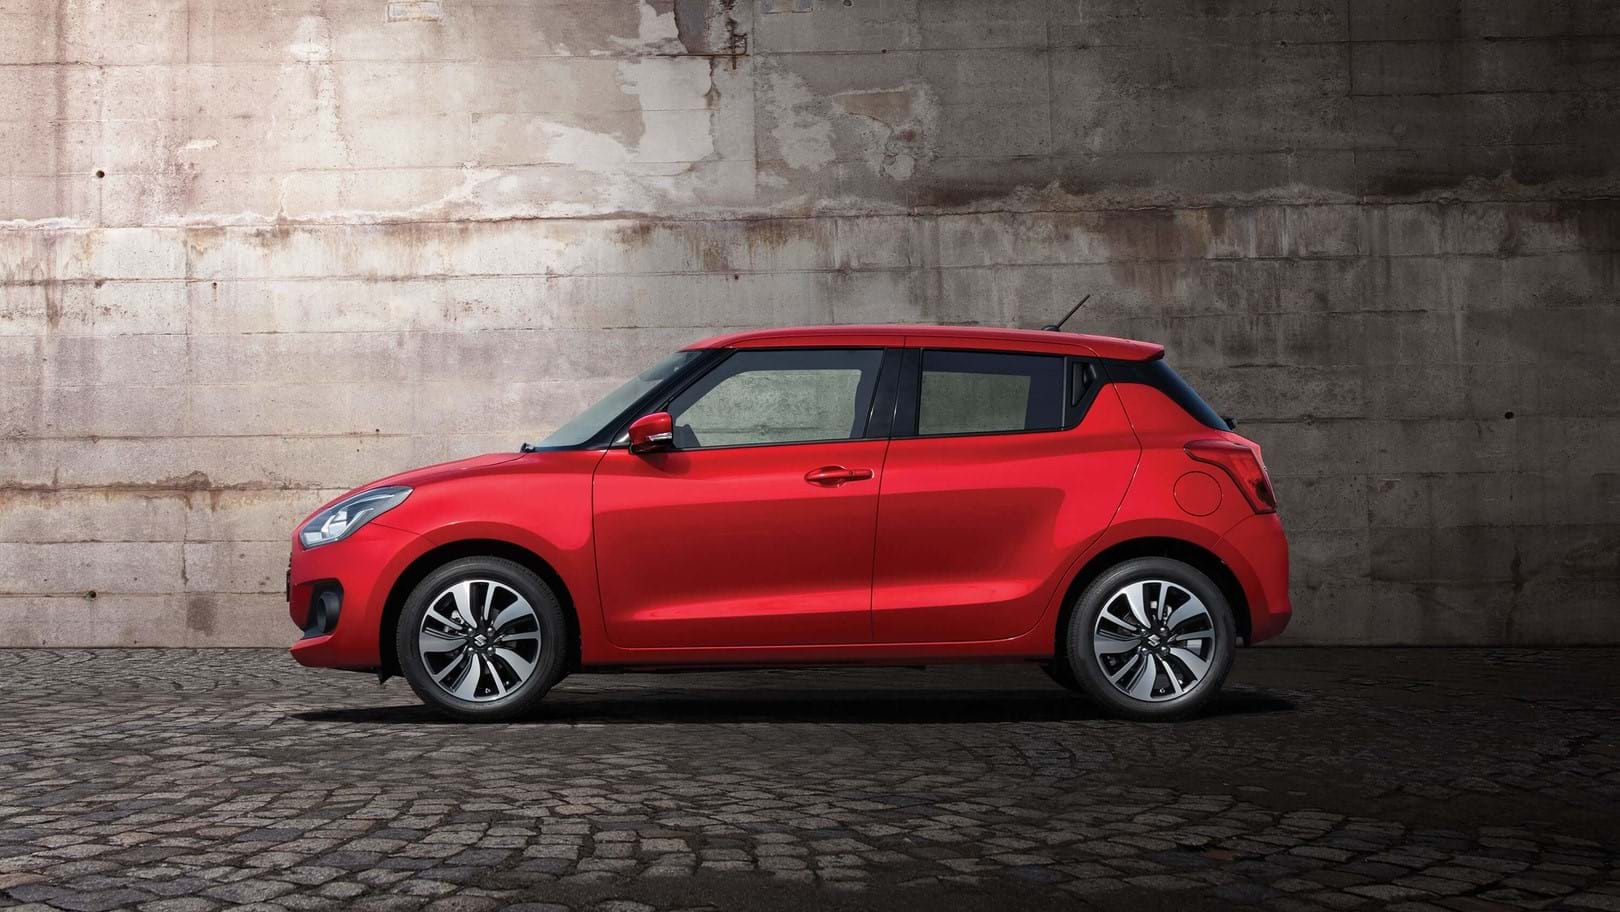 Side facing Suzuki Swift Car 2017